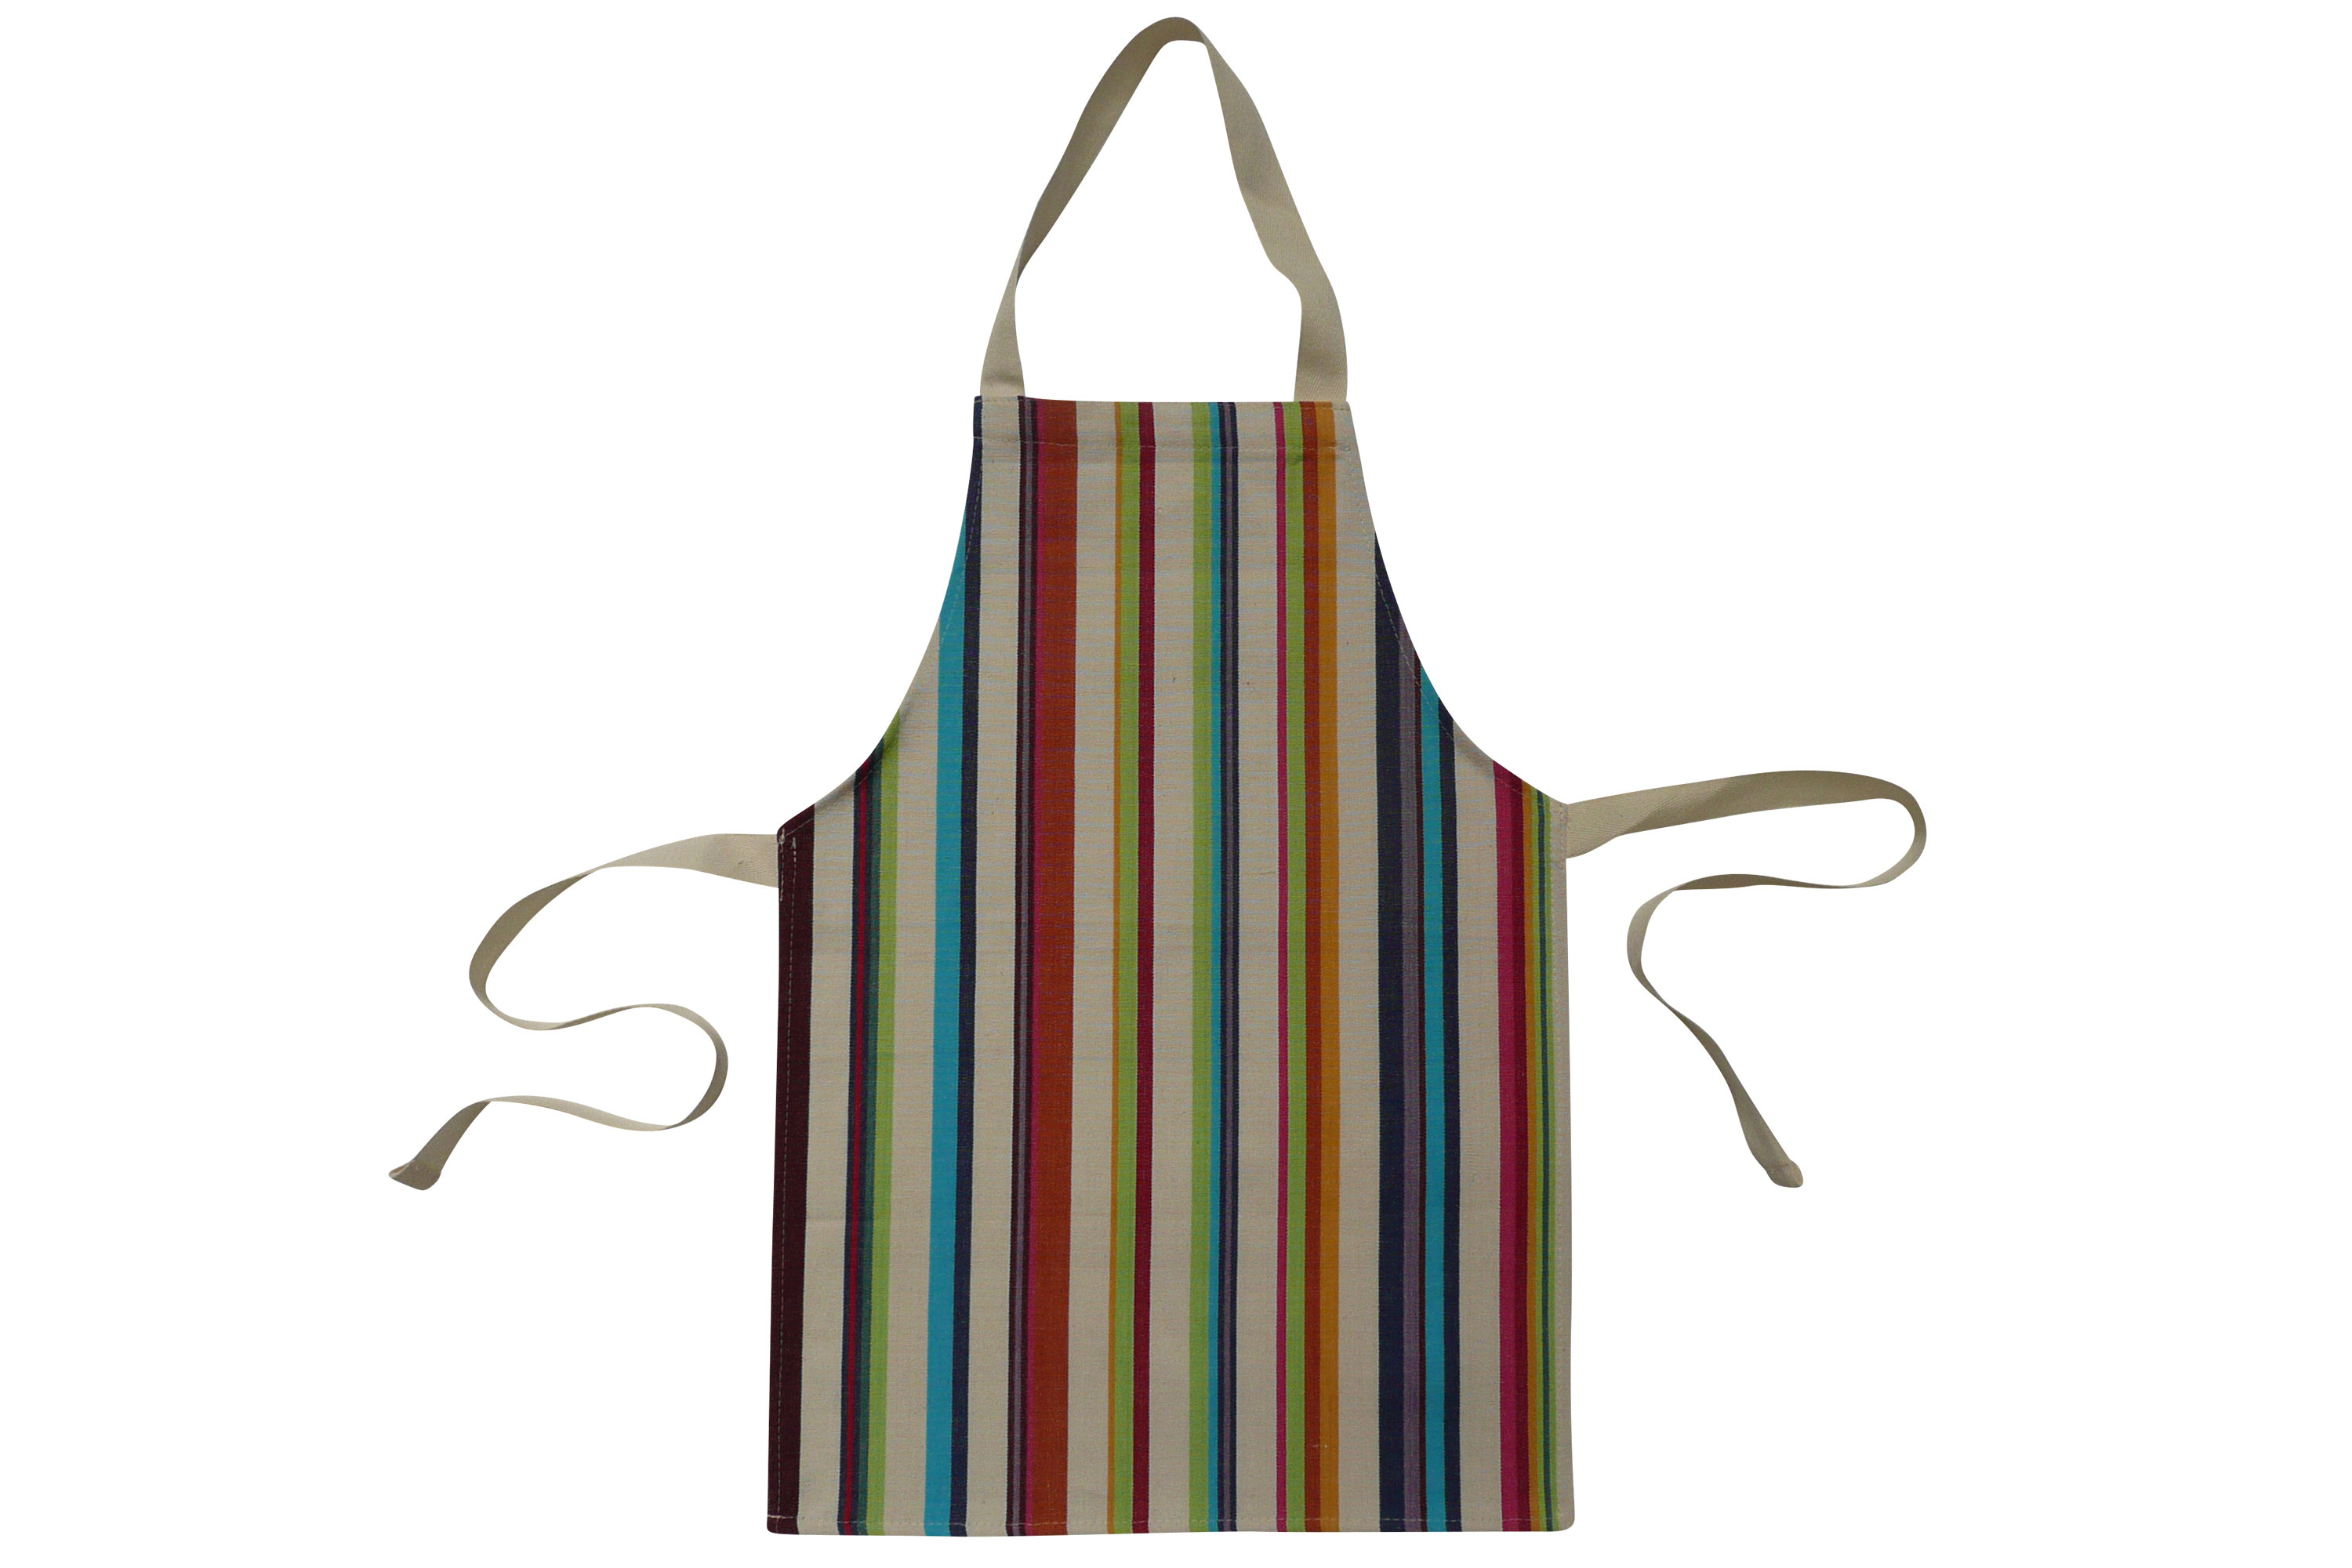 Cream Toddlers Aprons - Striped Aprons For Small Children Cream  Brown  Terracotta  Green  Stripes